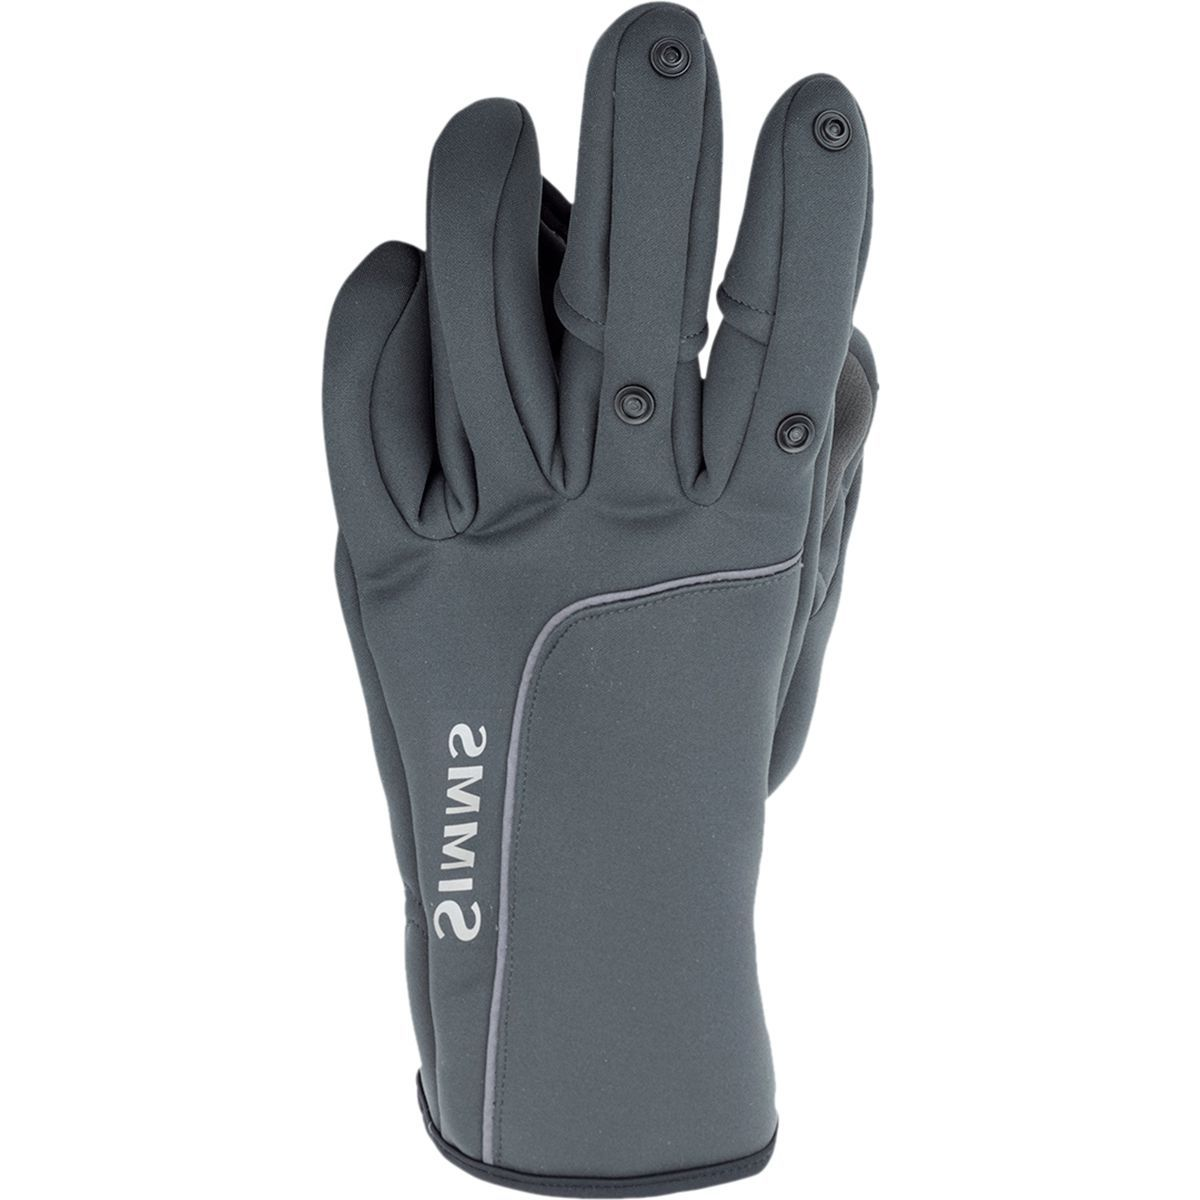 Simms Guide Windbloc Flex Glove - Men's